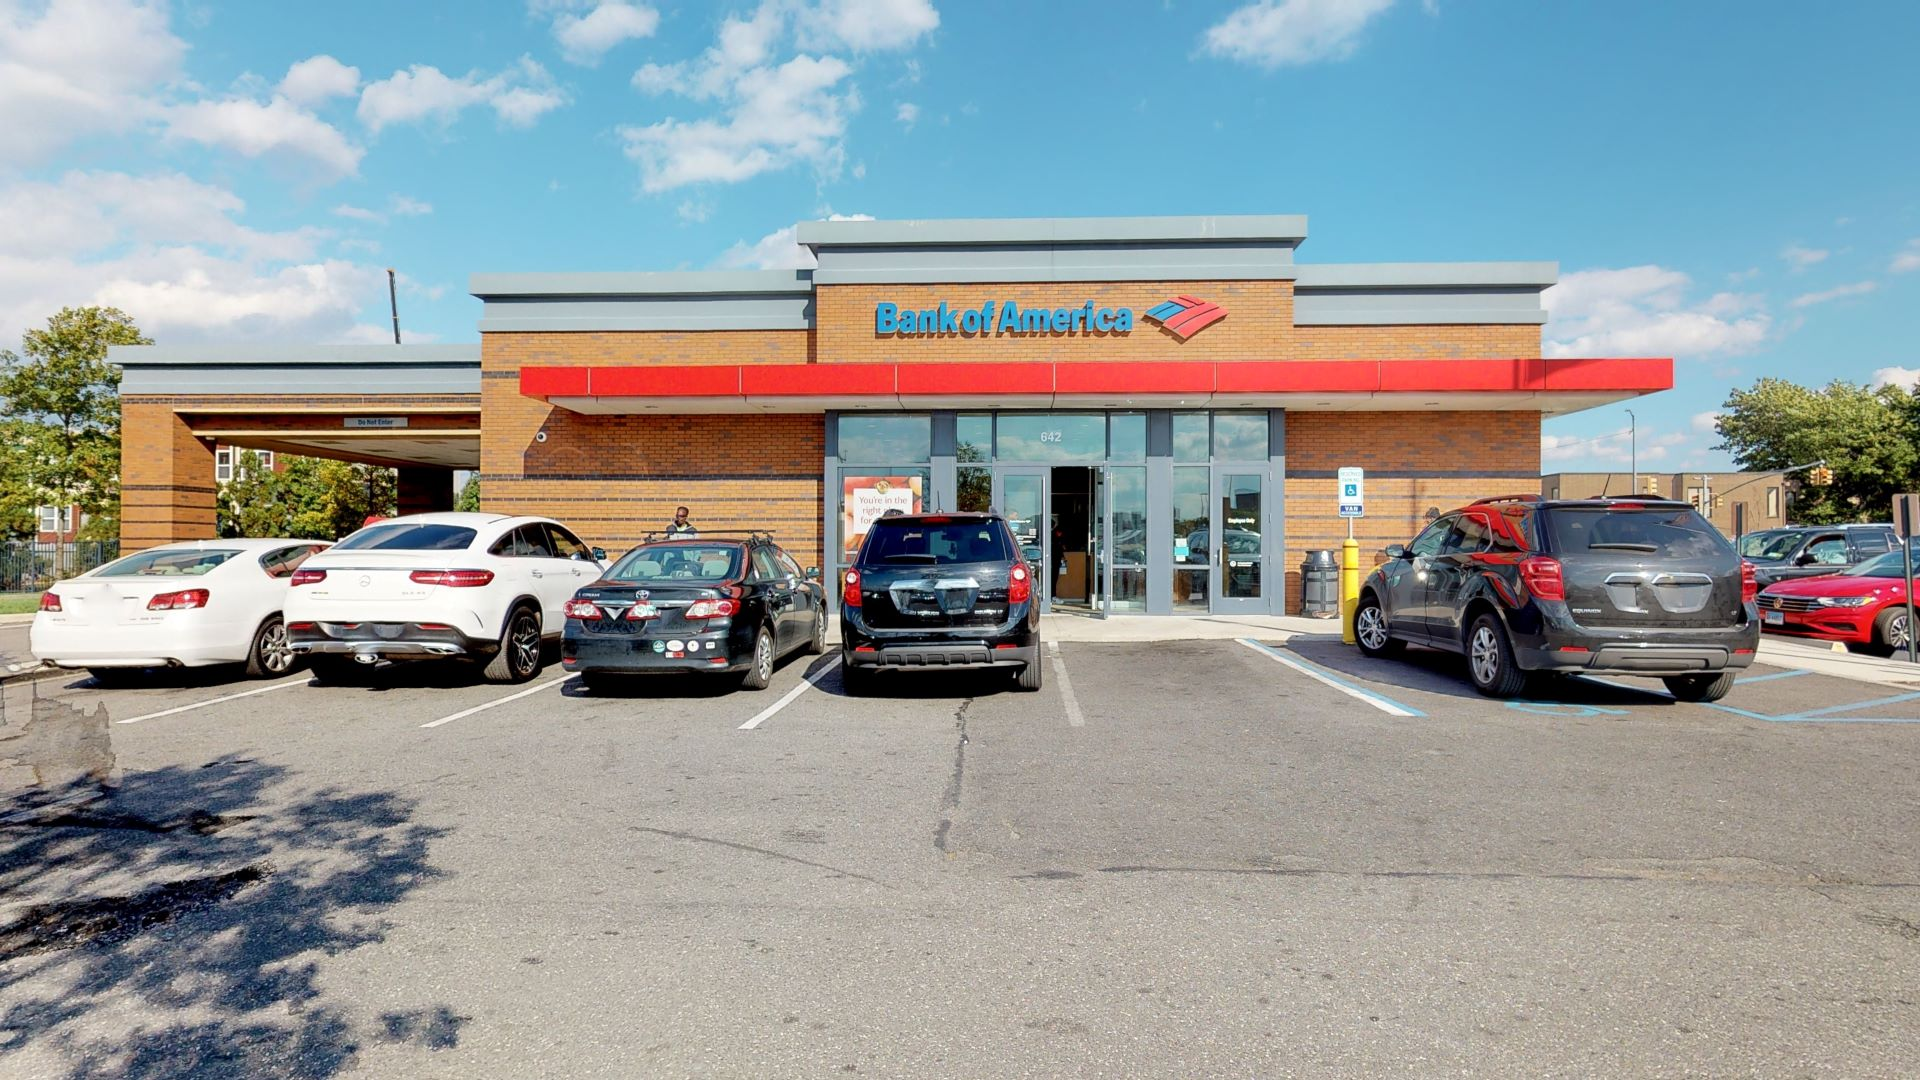 Bank of America financial center with drive-thru ATM   642 Gateway Dr, Brooklyn, NY 11239